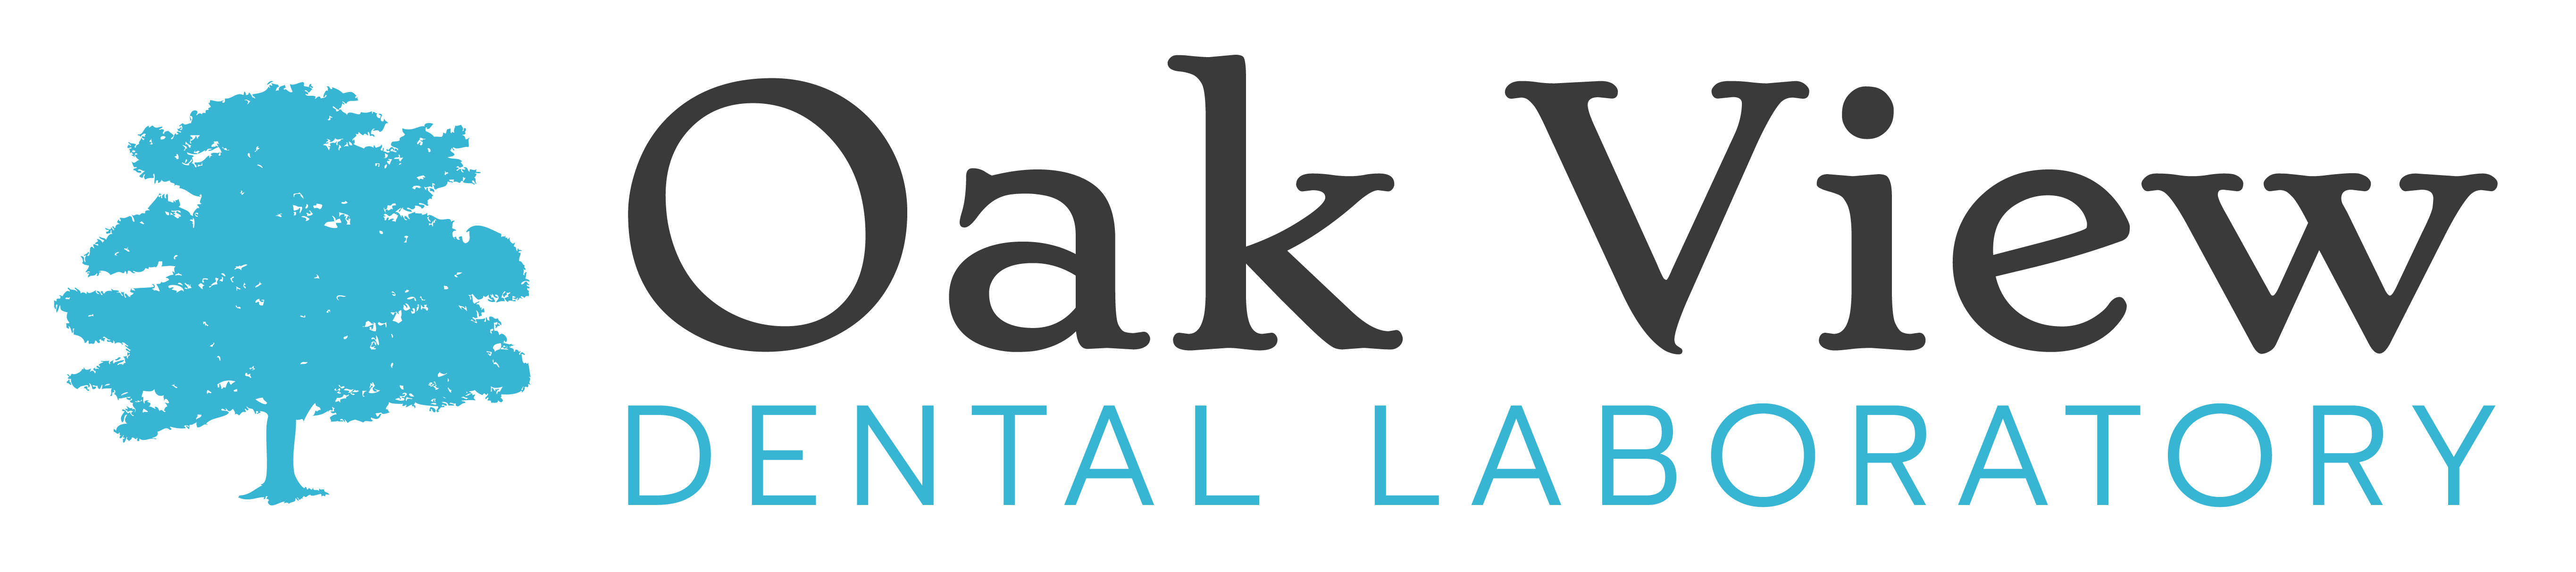 Oakview Dental Lab Header Image